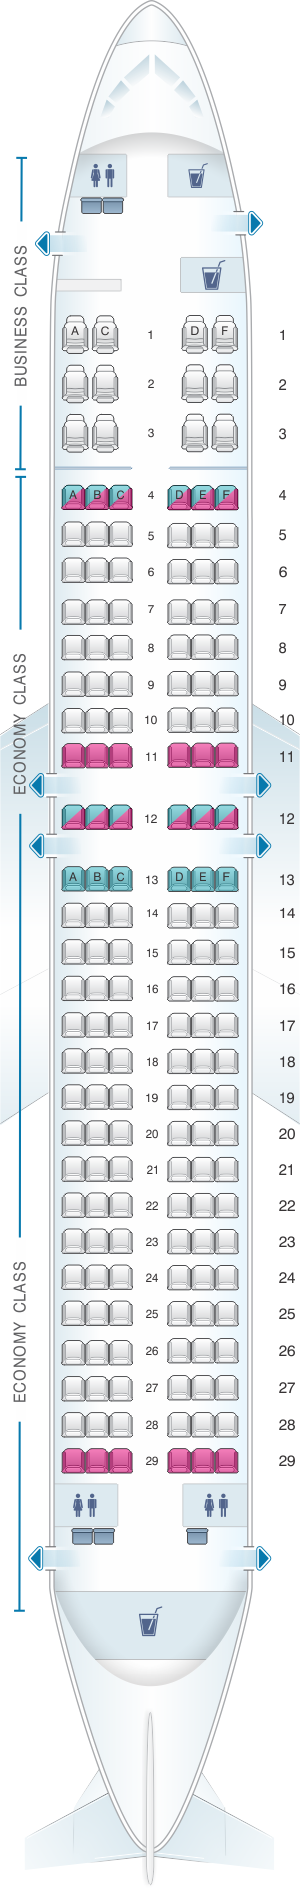 Seat map for Rossiya Airlines Boeing B737 800 168PAX V2